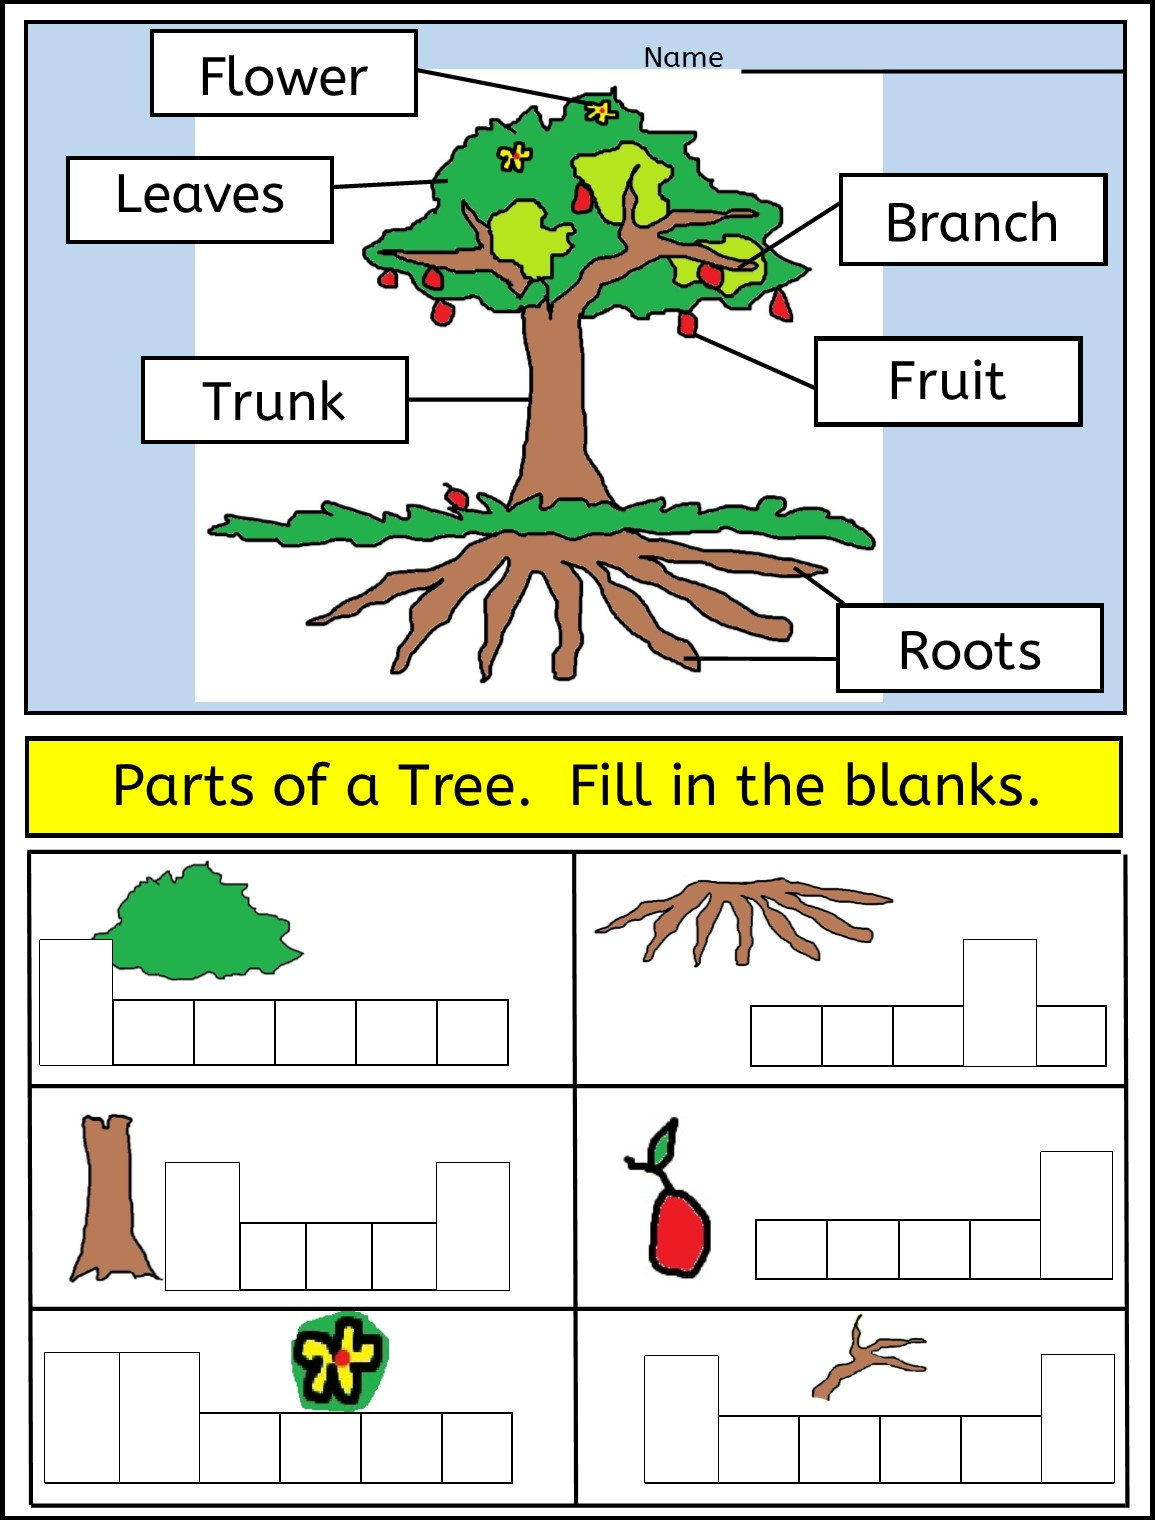 Worksheet Showing Parts Of A Tree